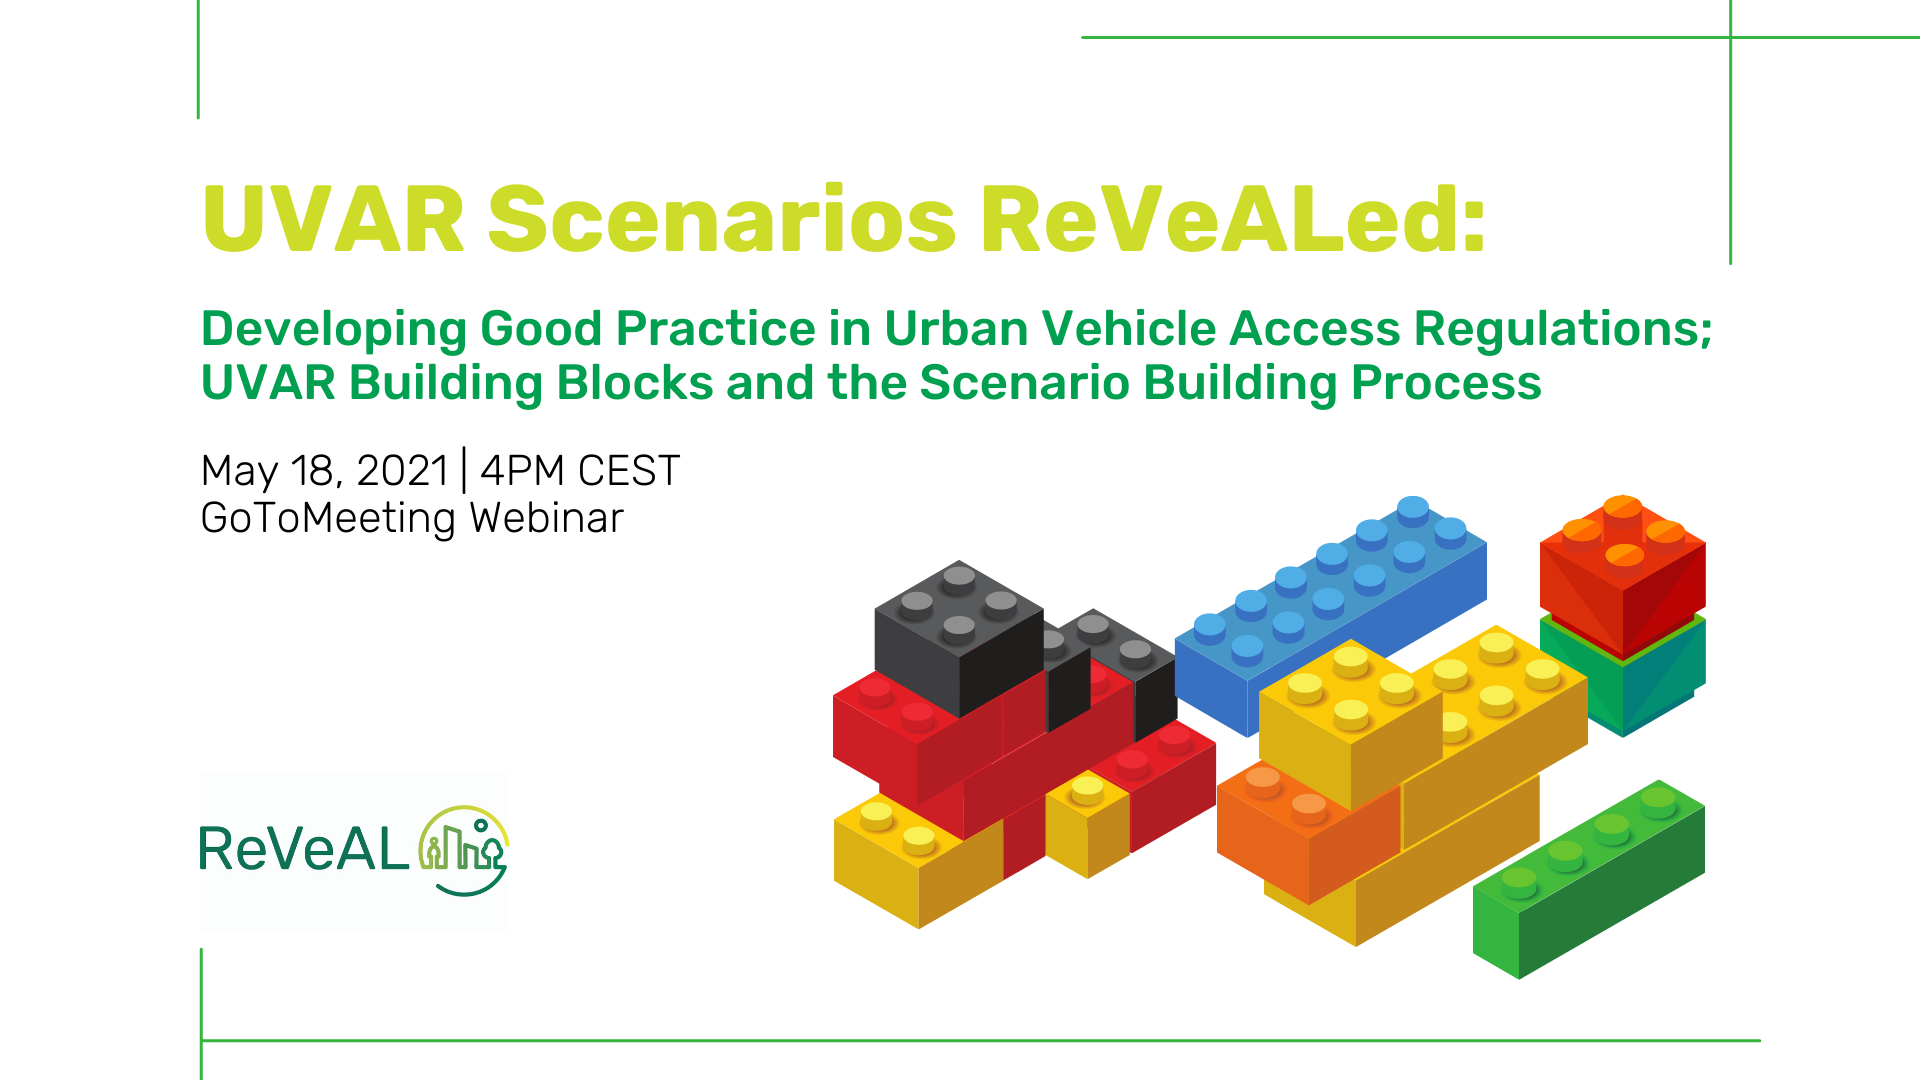 ReVeAL Webinar: UVAR Scenarios ReVeALed